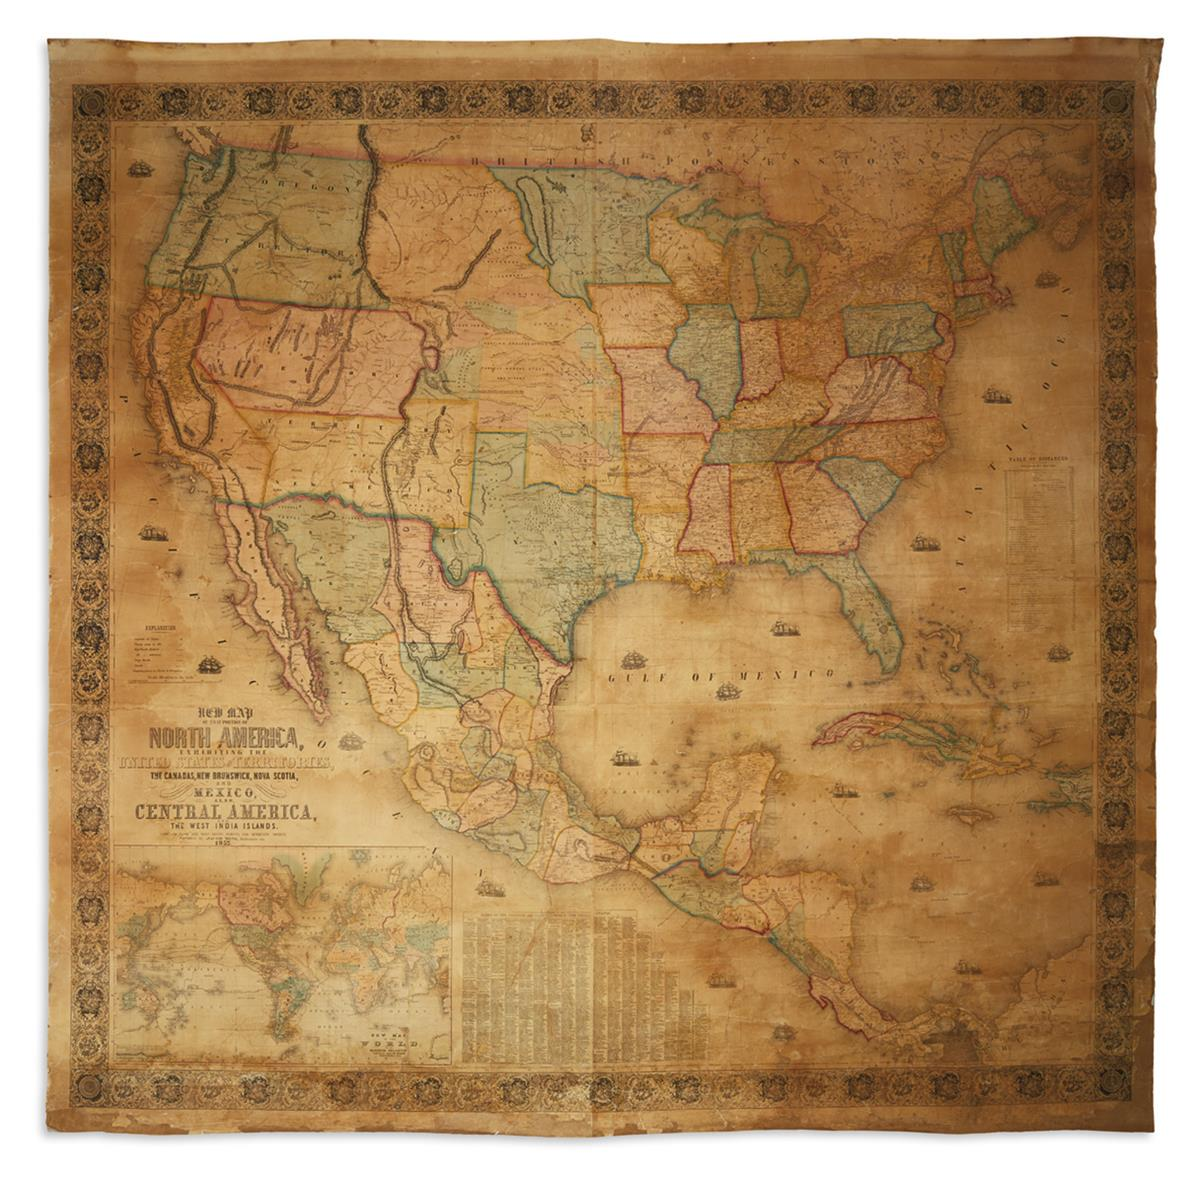 MONK-JACOB-New-Map-of-That-Portion-of-North-America-Exhibiti